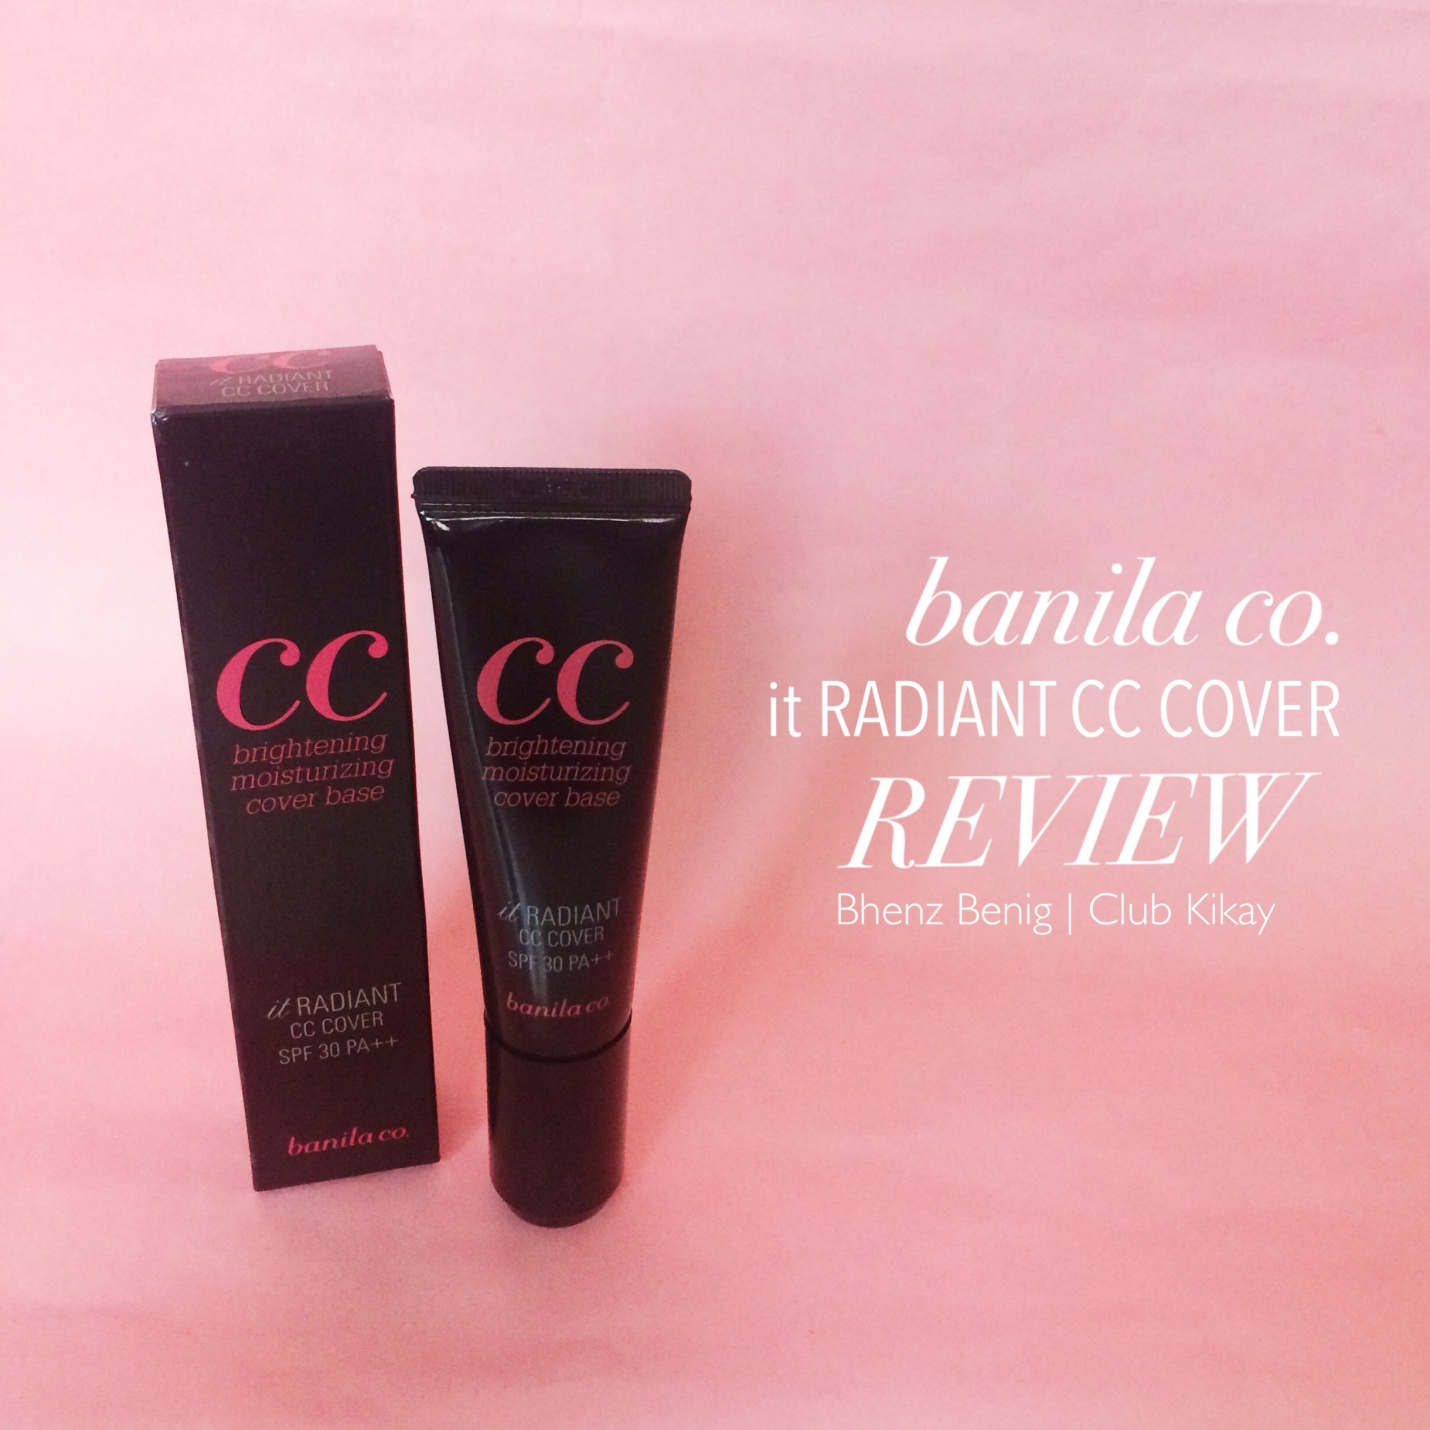 REVIEW: banila co. it Radiant CC Cover SPF 30 PA ++